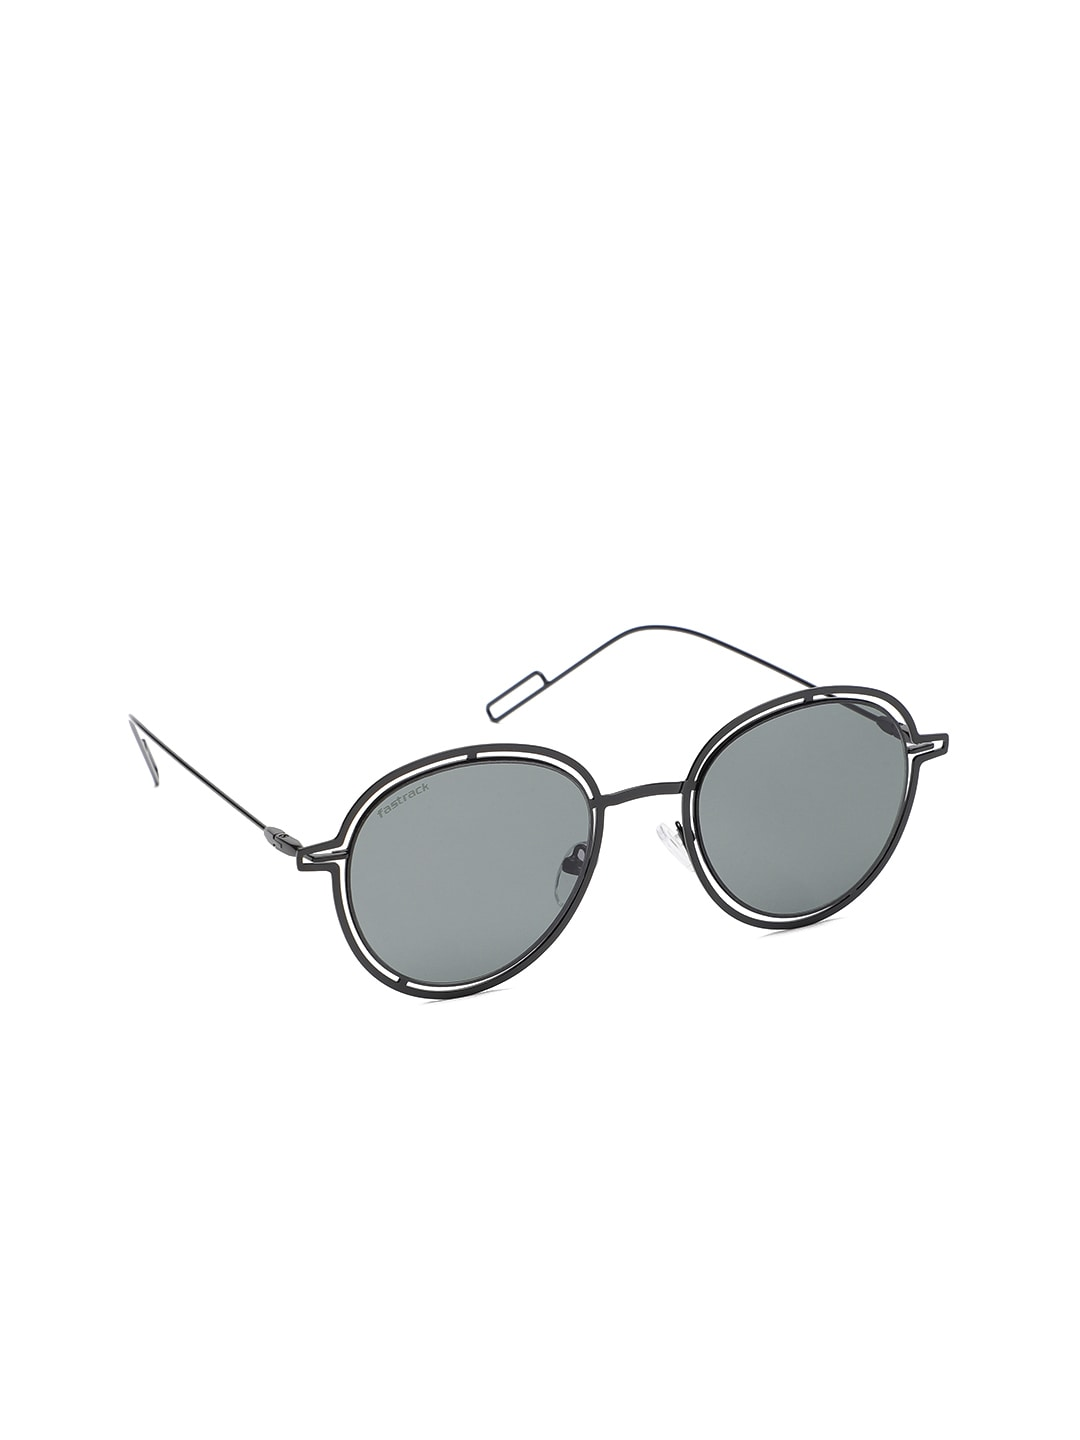 648b712cee Goggles - Buy Goggles for Men and Women Online - Myntra